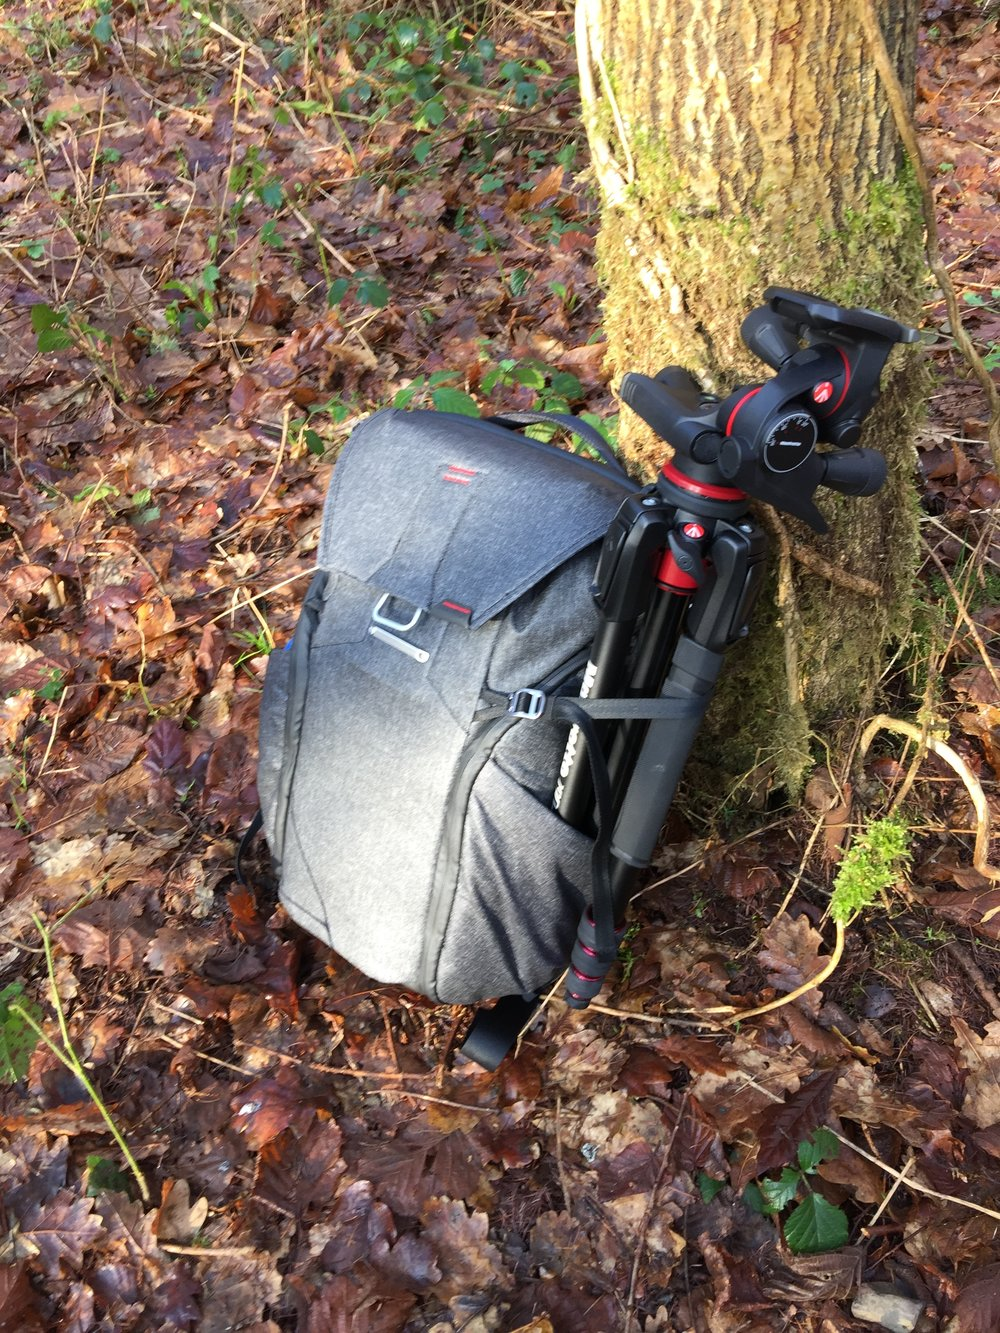 The Peak Design Everyday Backpack with Manfrotto Tripod safely attached